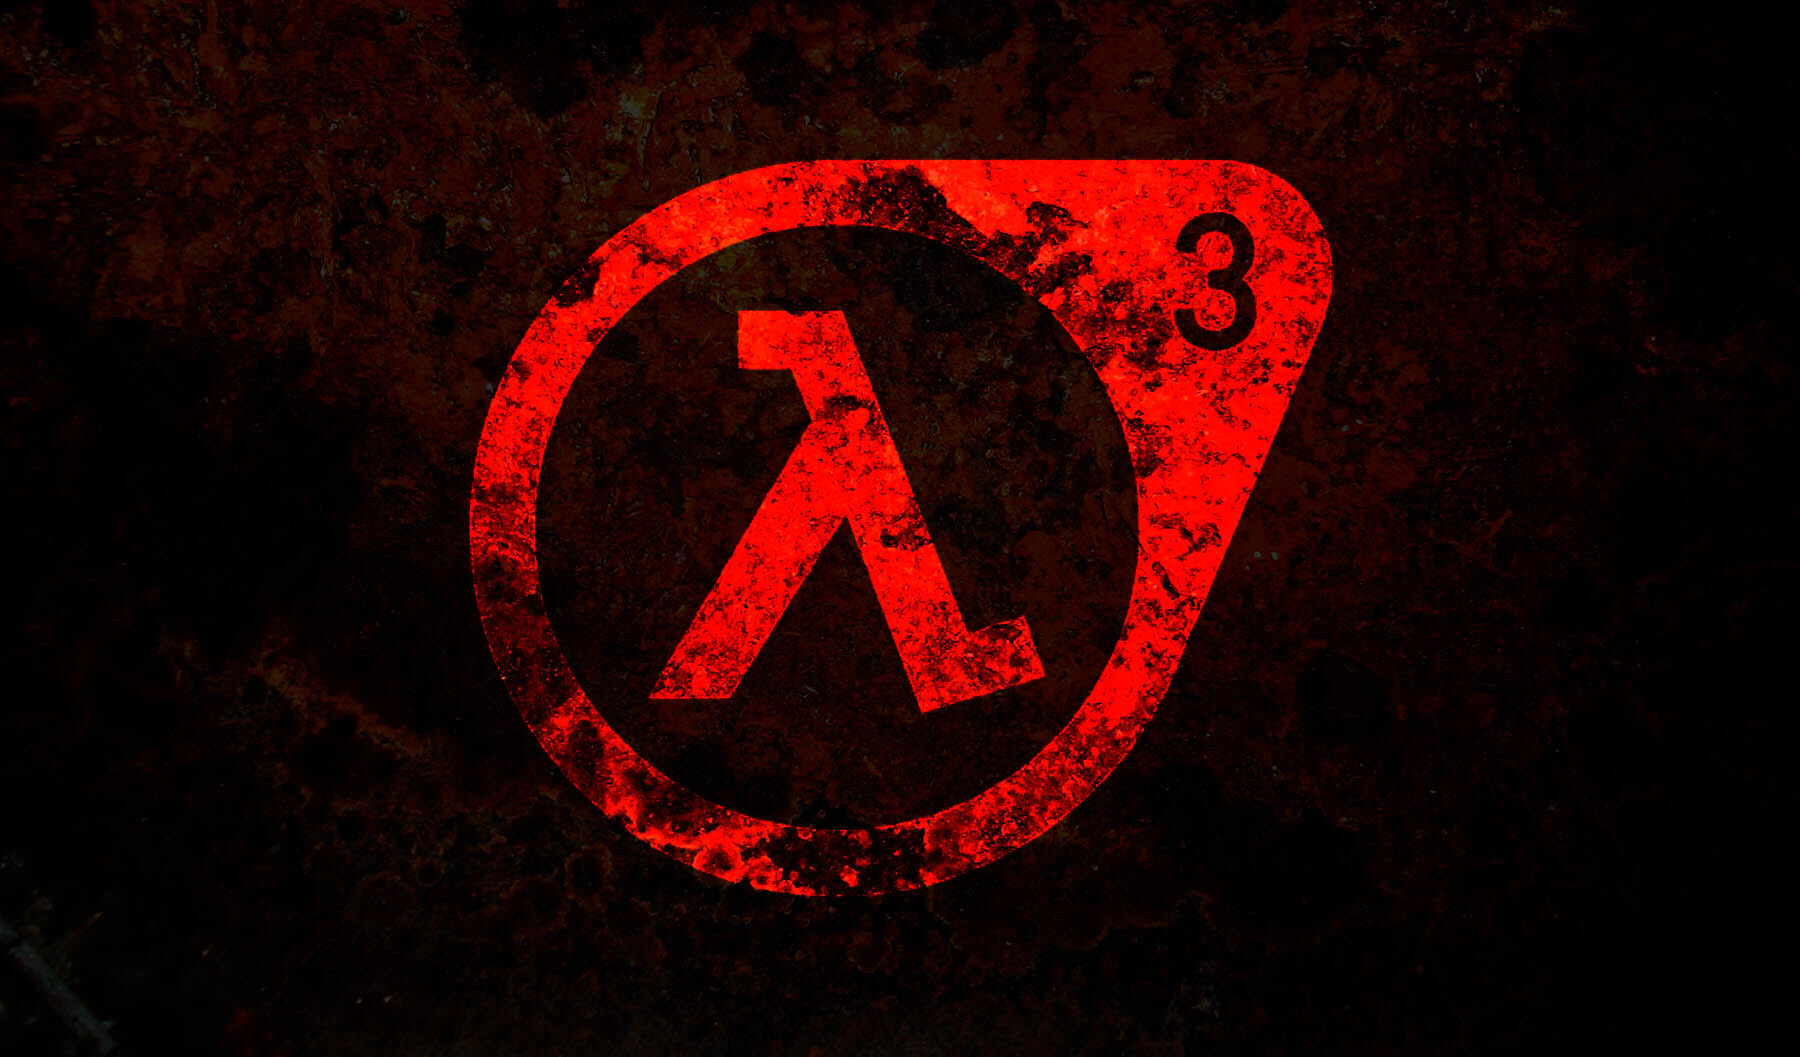 Here are 13 minutes of gameplay footage from the upcoming Half-Life 3 fan game, Boreal Alyph